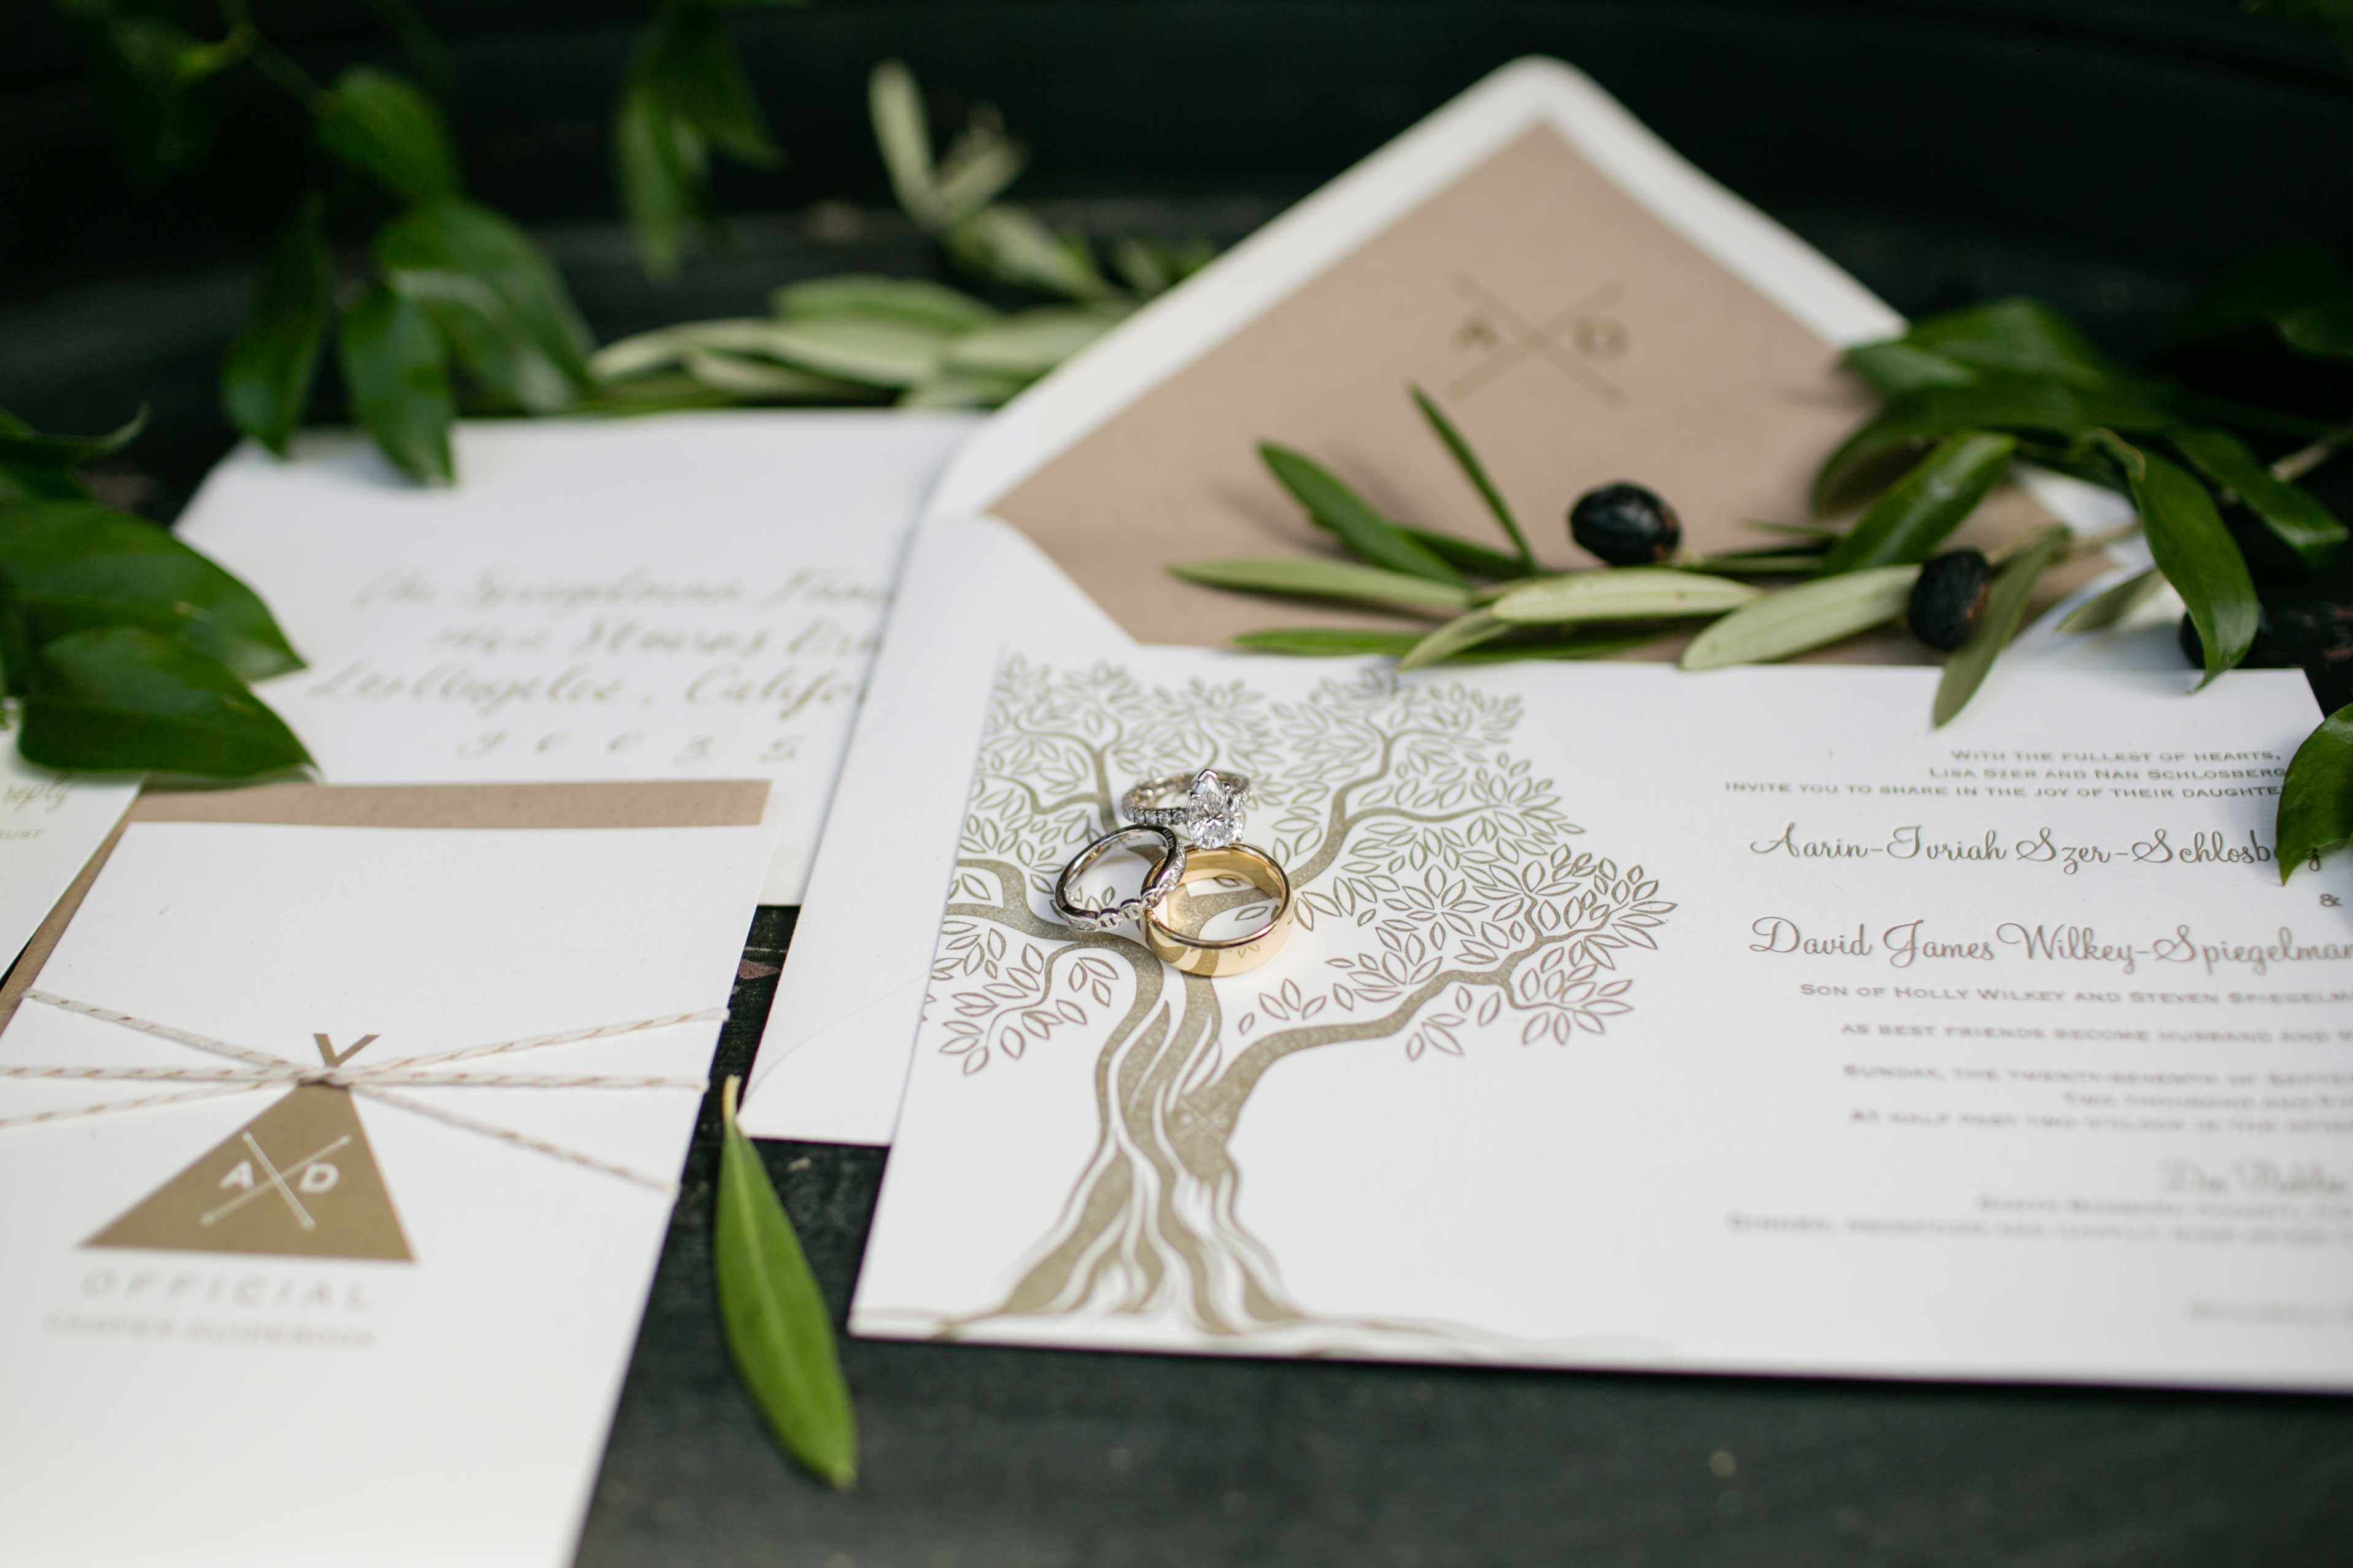 wedding invitation with gold envelope and tree motif design